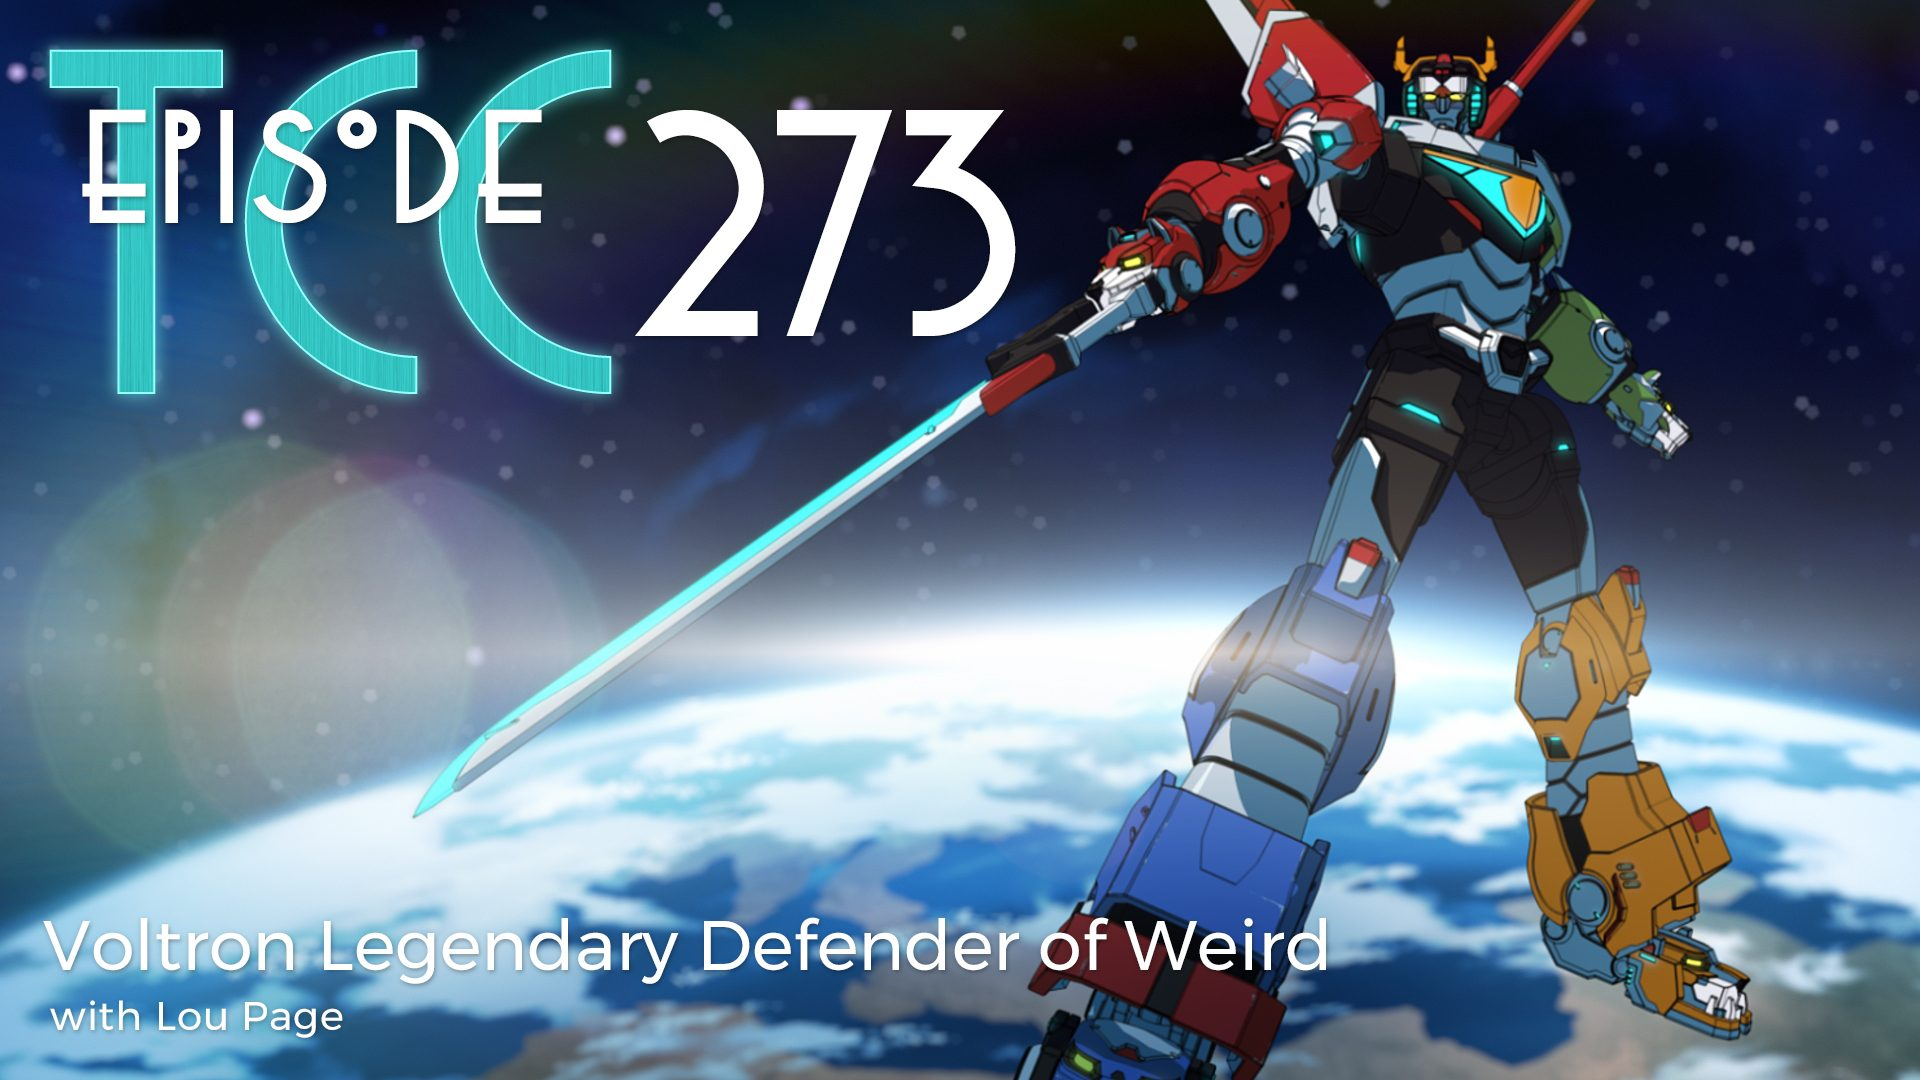 The Citadel Cafe 273: Voltron Legendary Defender of Weird